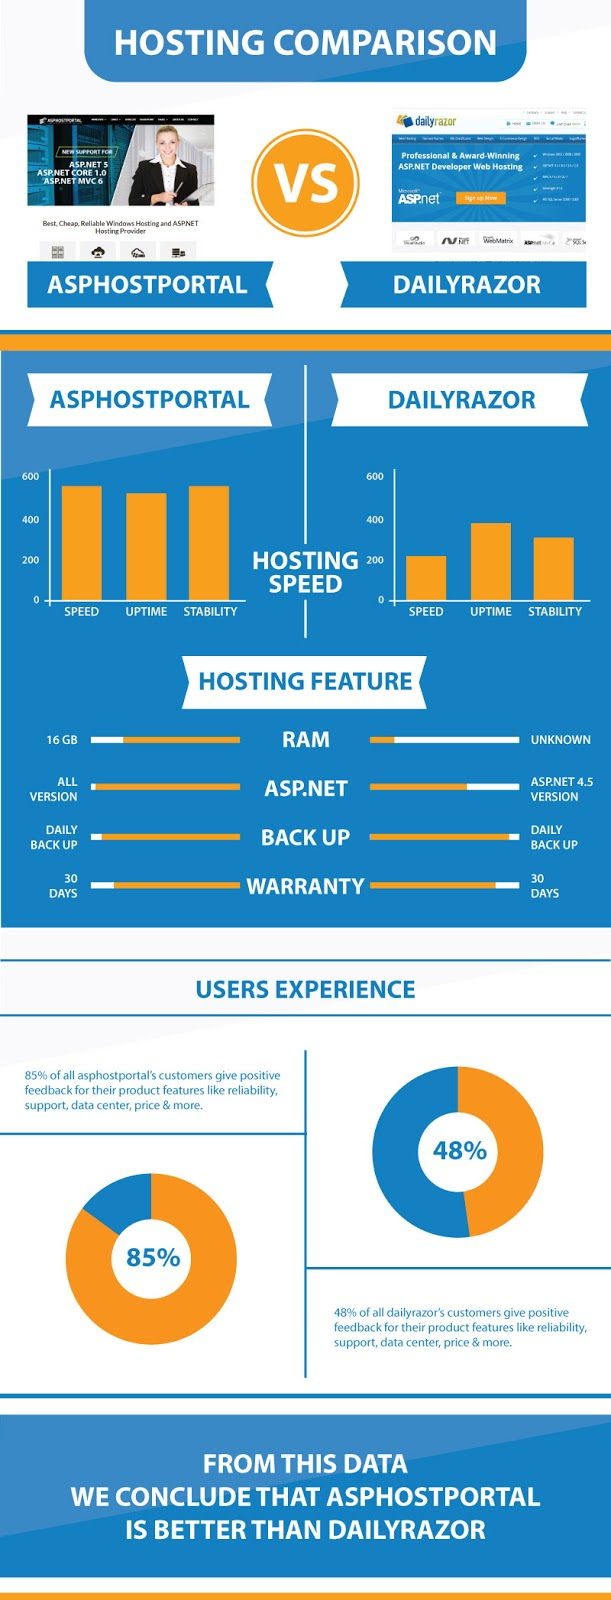 ASP.NET Core 1.0 Hosting Comparison | ASPHostPortal Vs DailyRazor | Explained With Infographic